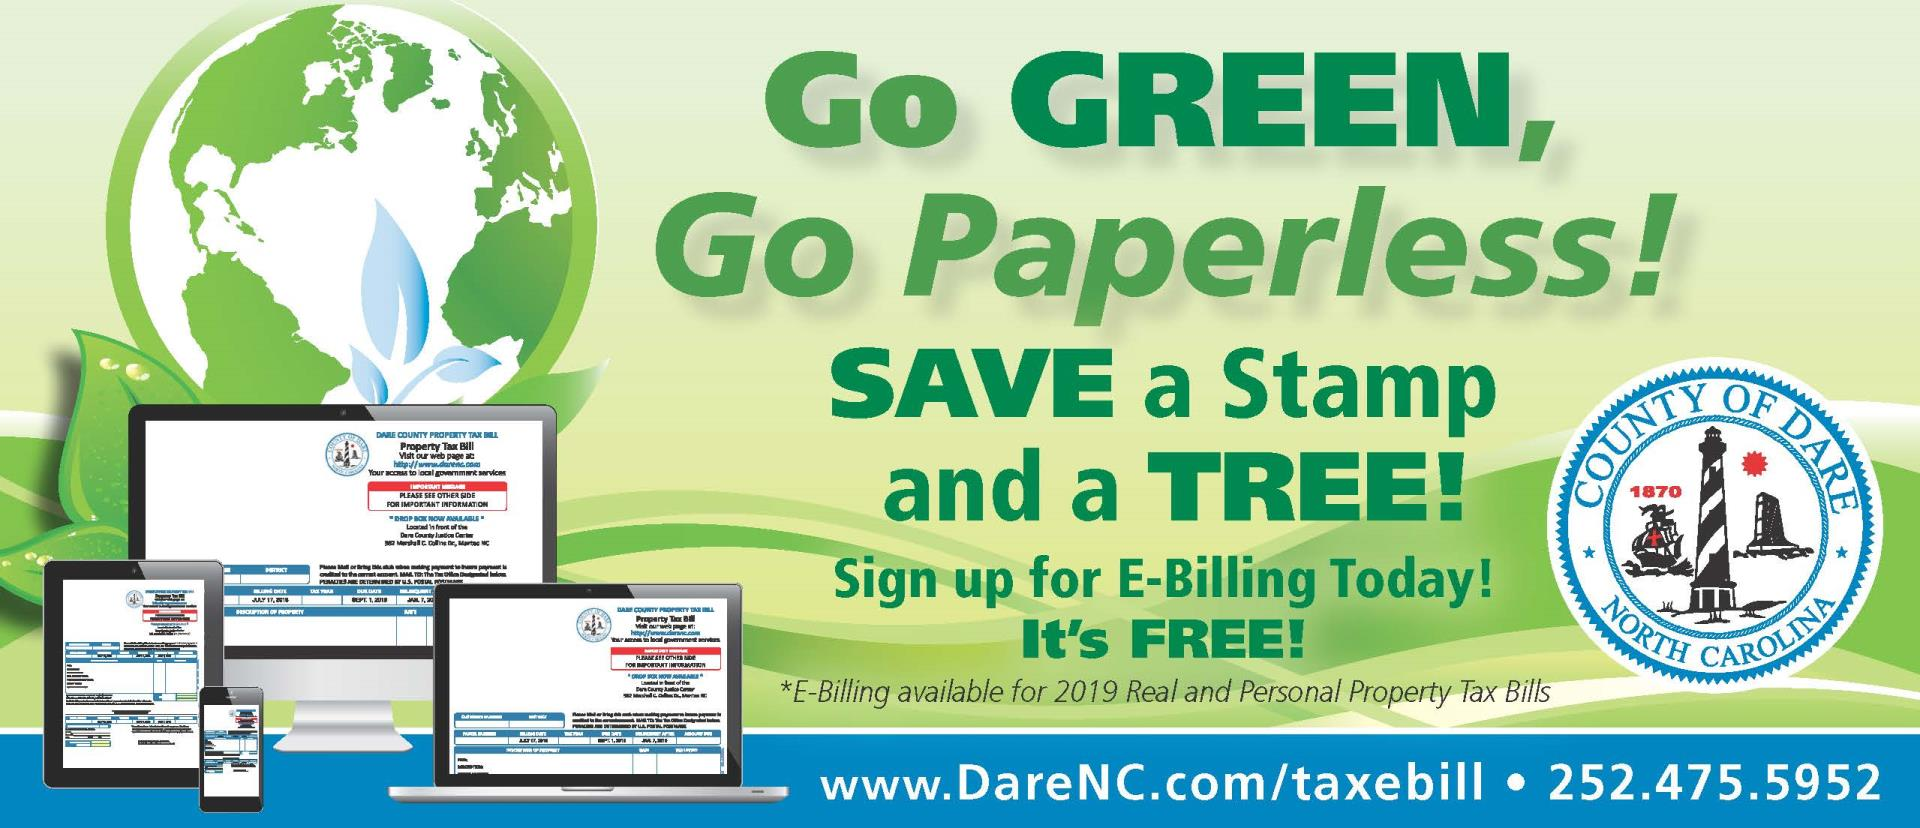 Go Green! Go Paperless! Save a Stamp and a Tree! Sign up for ebilling today! www.darenc.com/taxebill